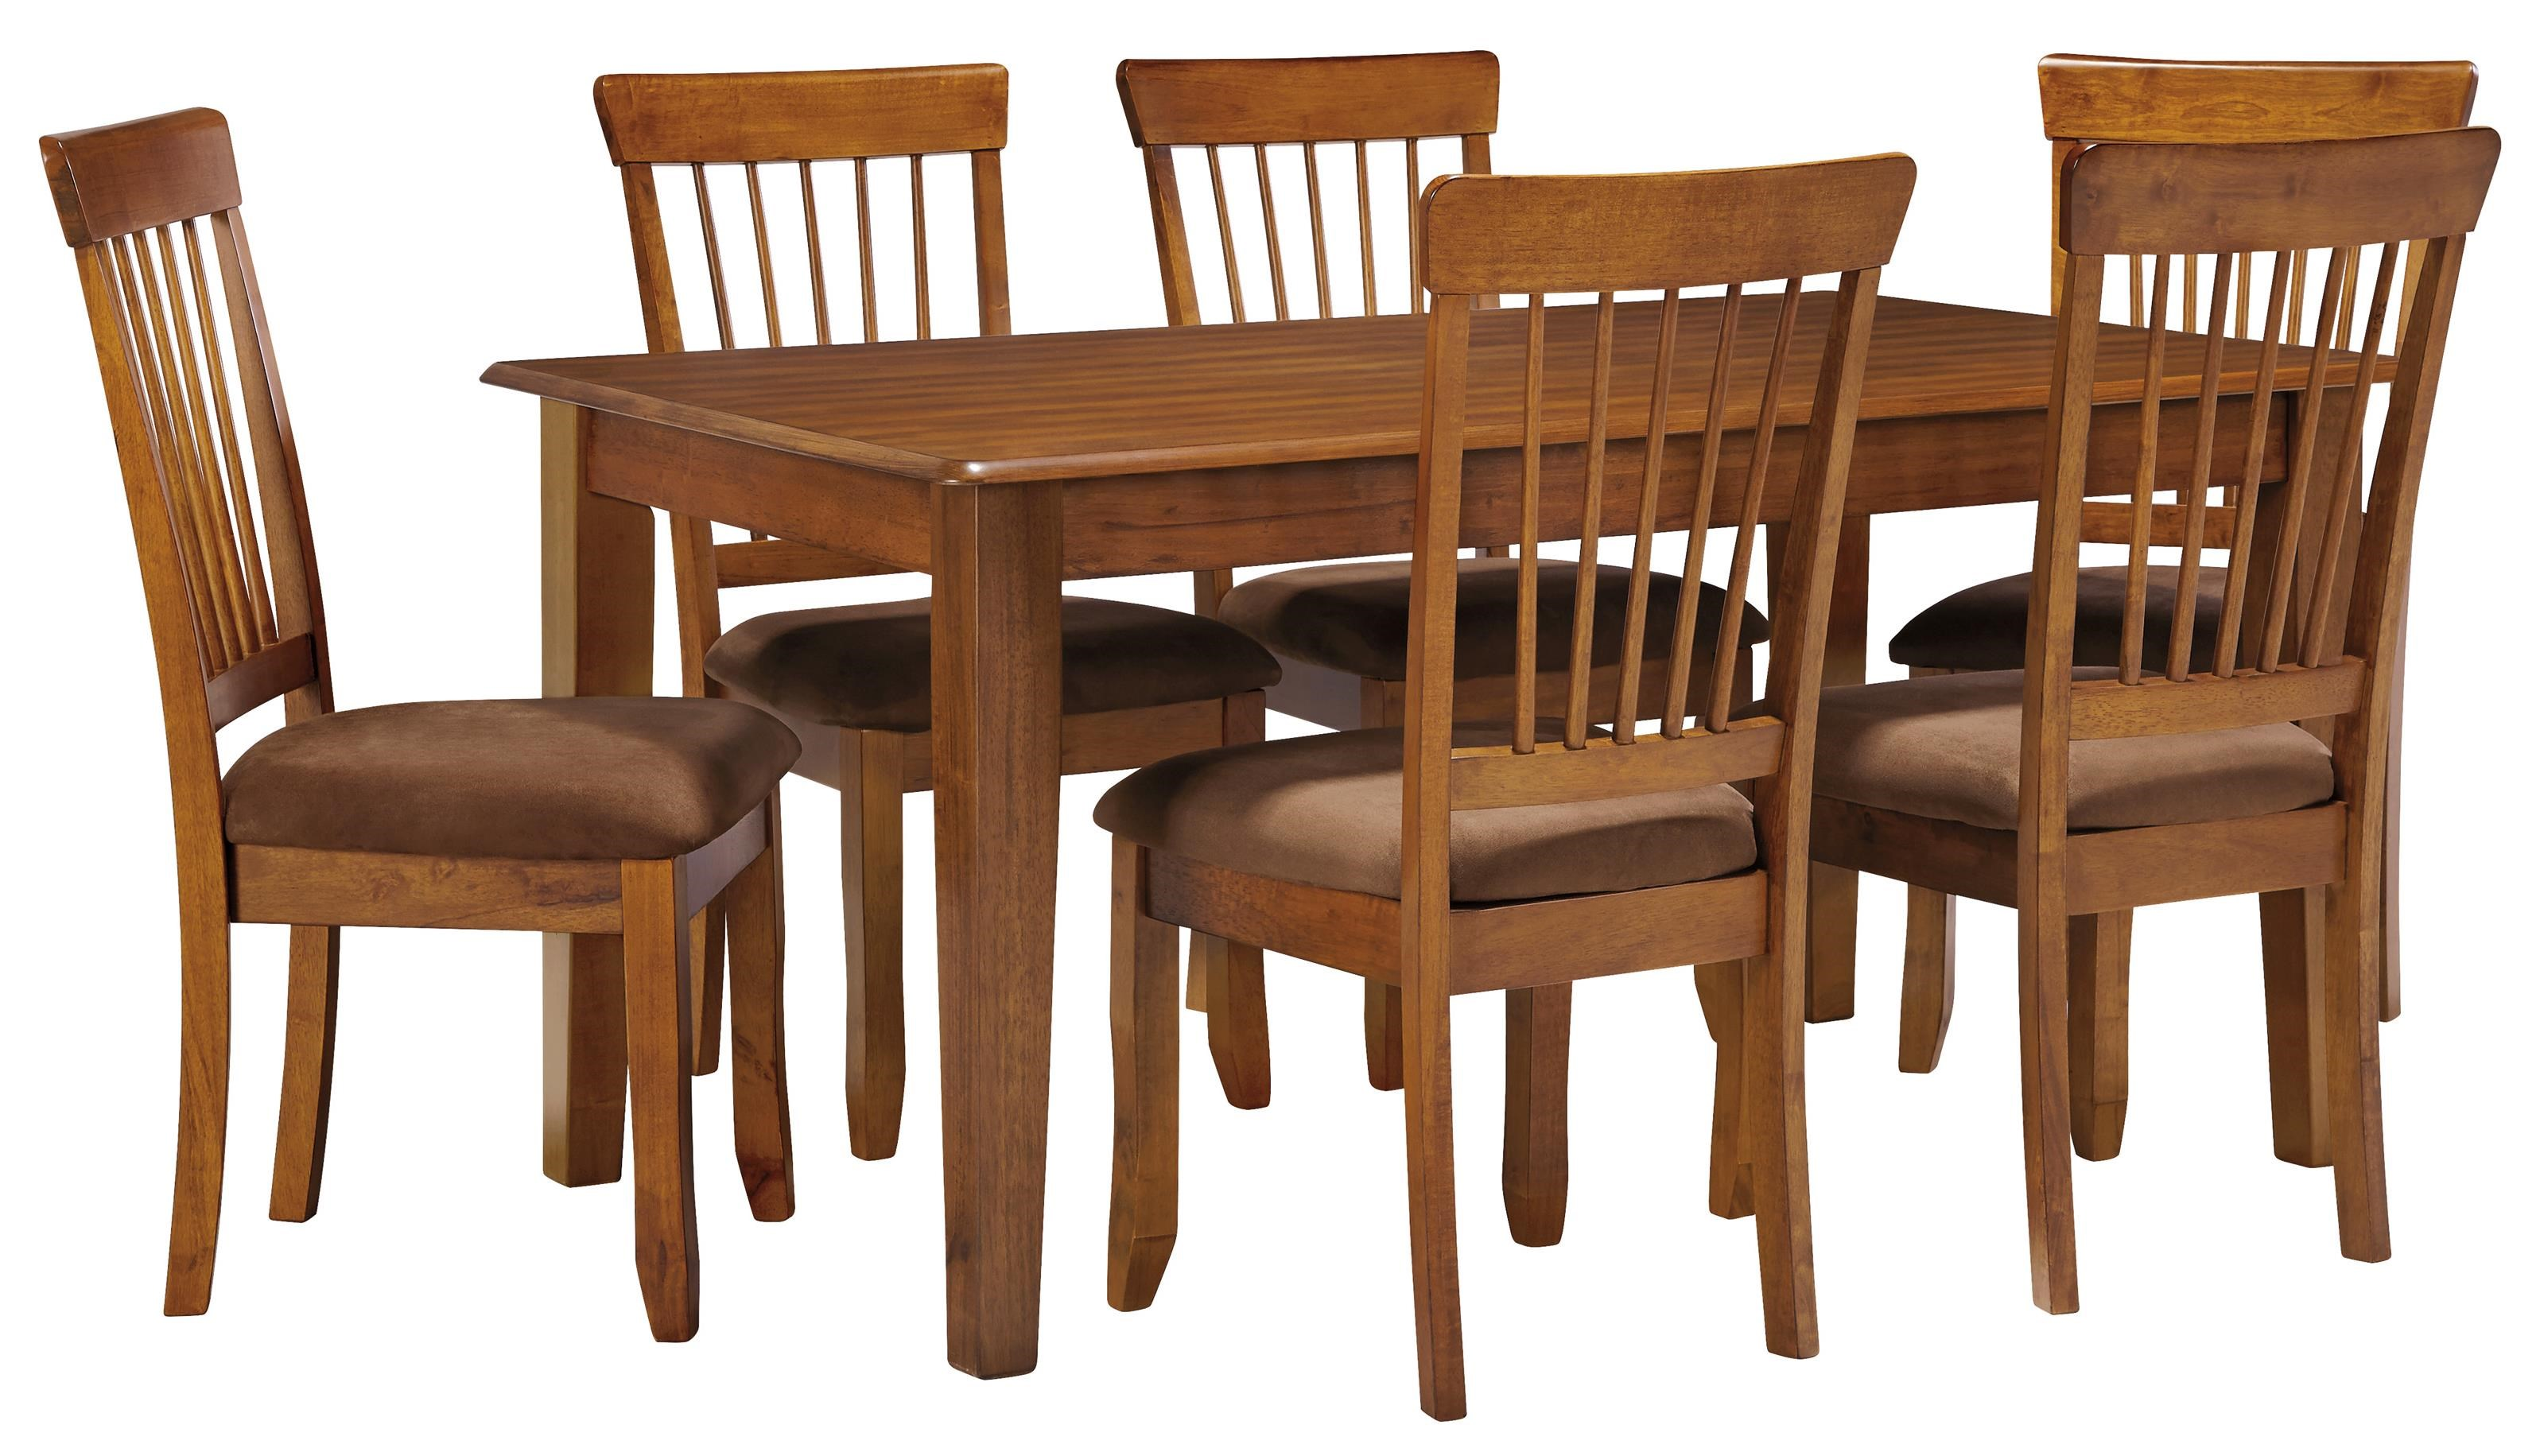 Ashley Furniture Berringer 7 Piece 36x60 Table U0026 Chair Set